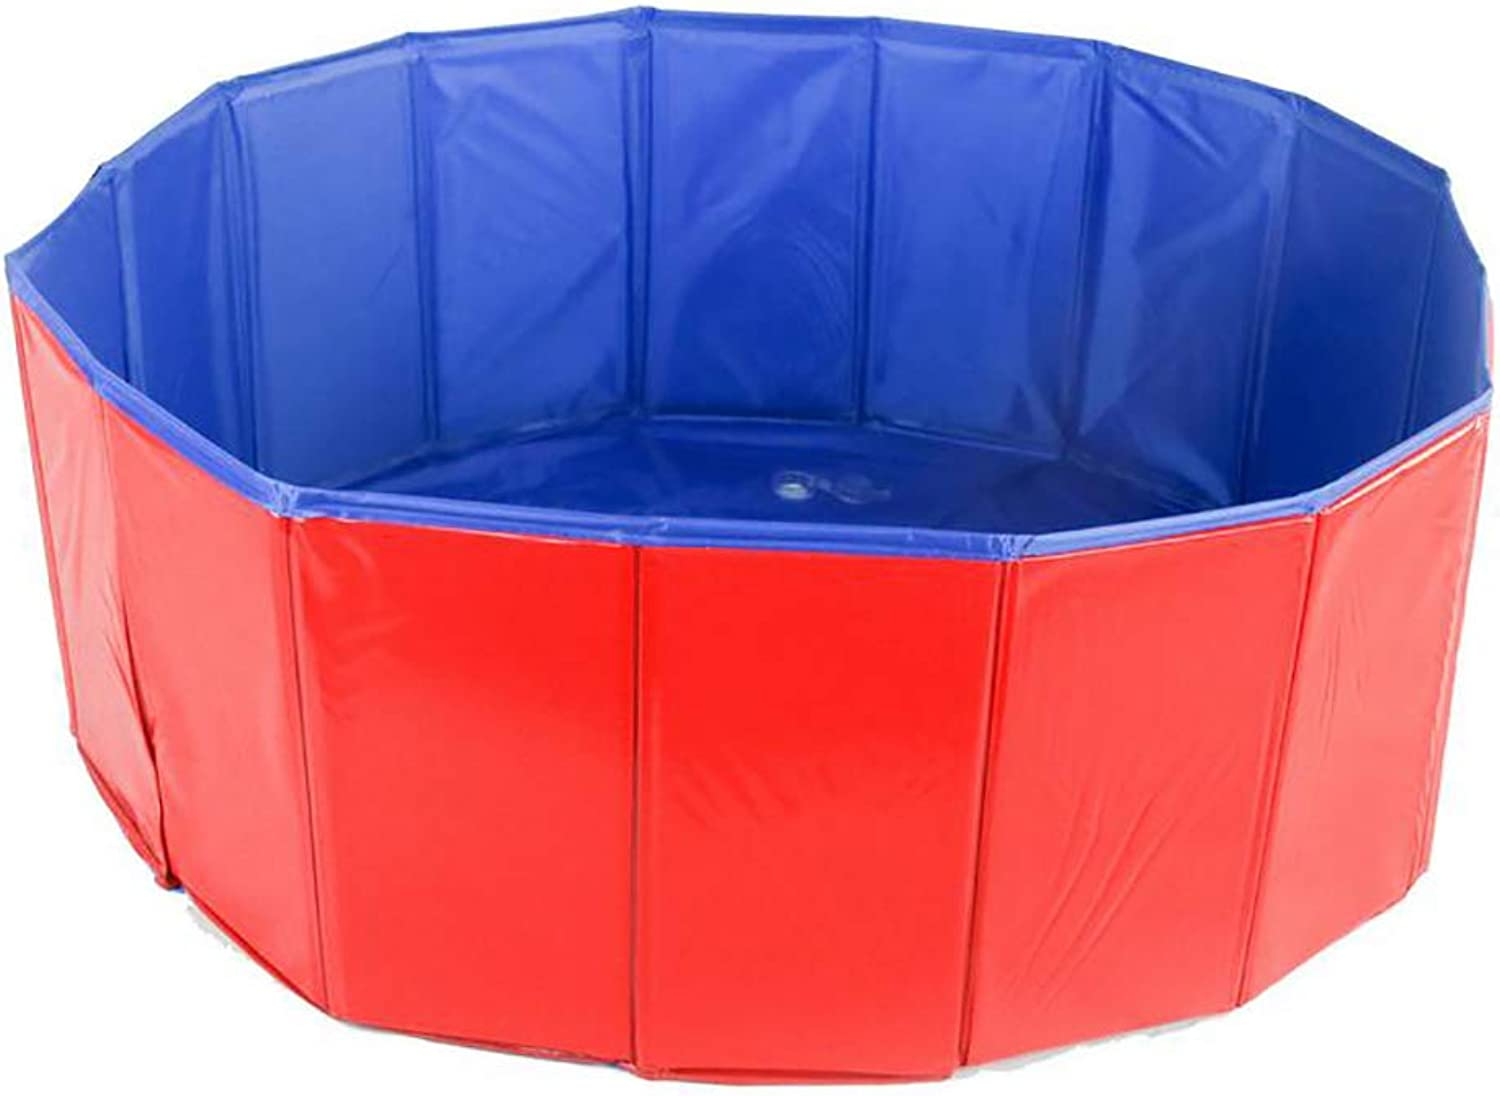 JYY PVC Pet Swimming Pool, Pet Washing Shower Grooming Portable Bath Tub,Park And Beach Kids Play Wash Tub,M